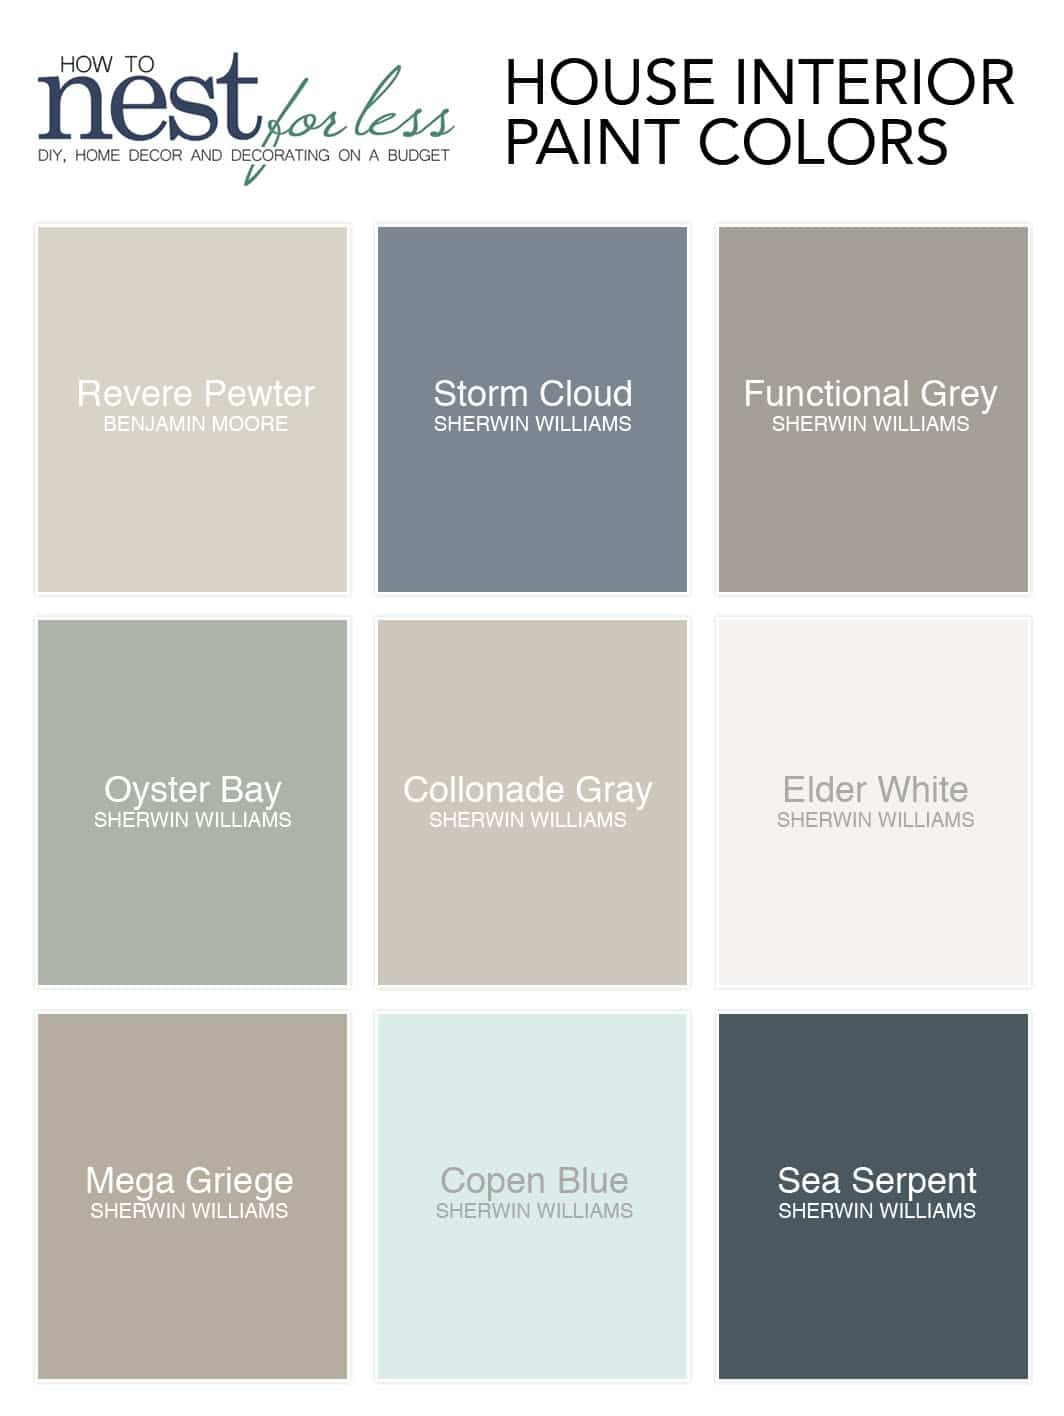 All the paint colors i use in my house how to nest for less - Interior home paint colors ...